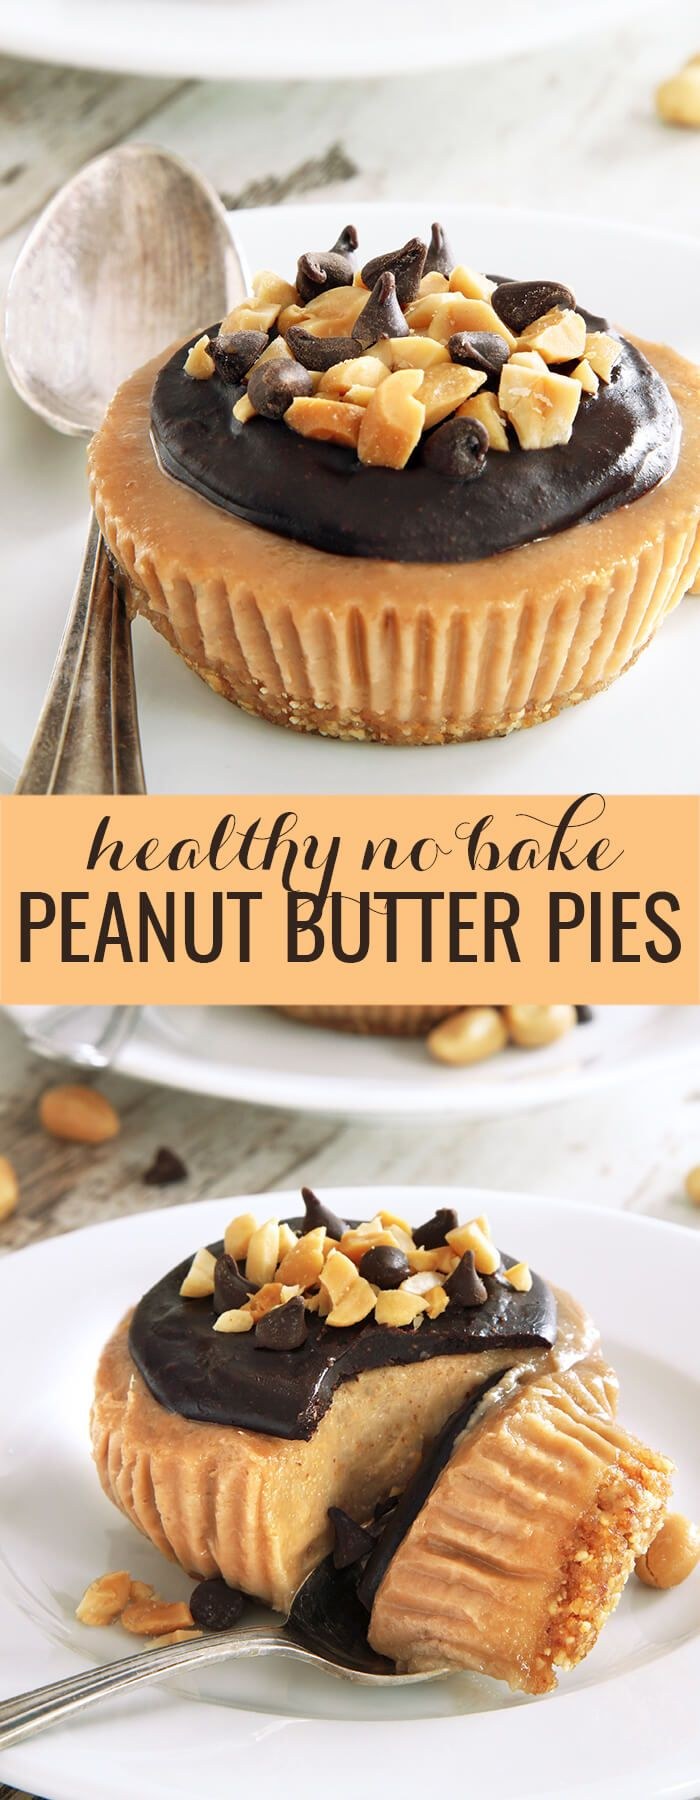 No bake peanut butter pie recipe made into healthy single-serve minis, with coconut milk instead of cream cheese in the filling. So simple and delicious!